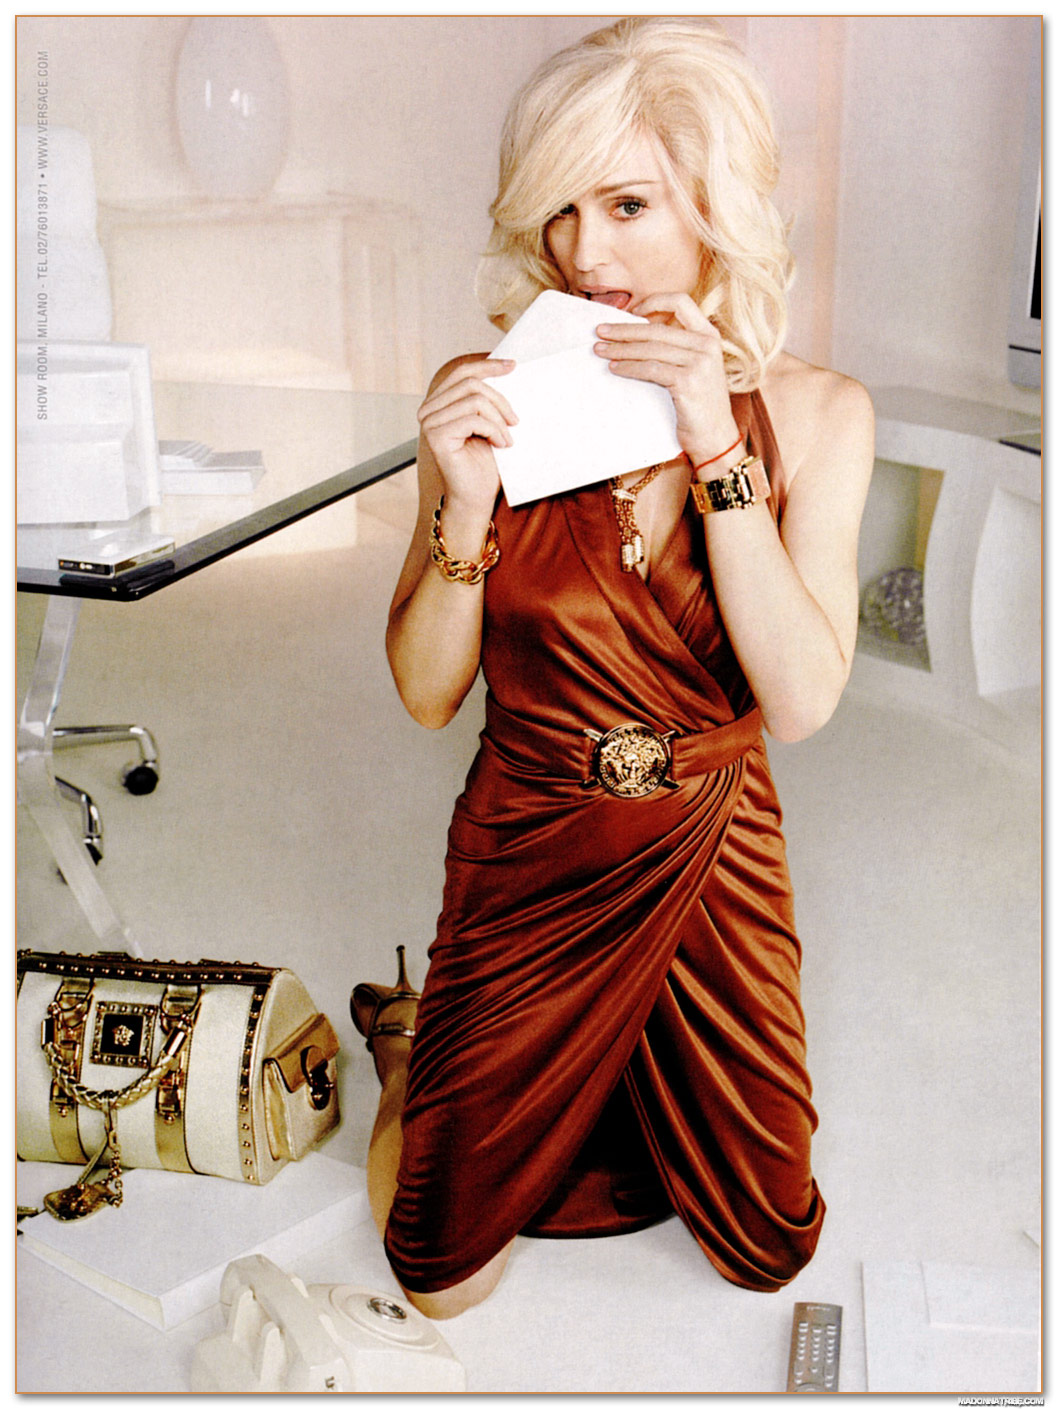 Vintage Versace Madonna Ad Campaign Shelby White The